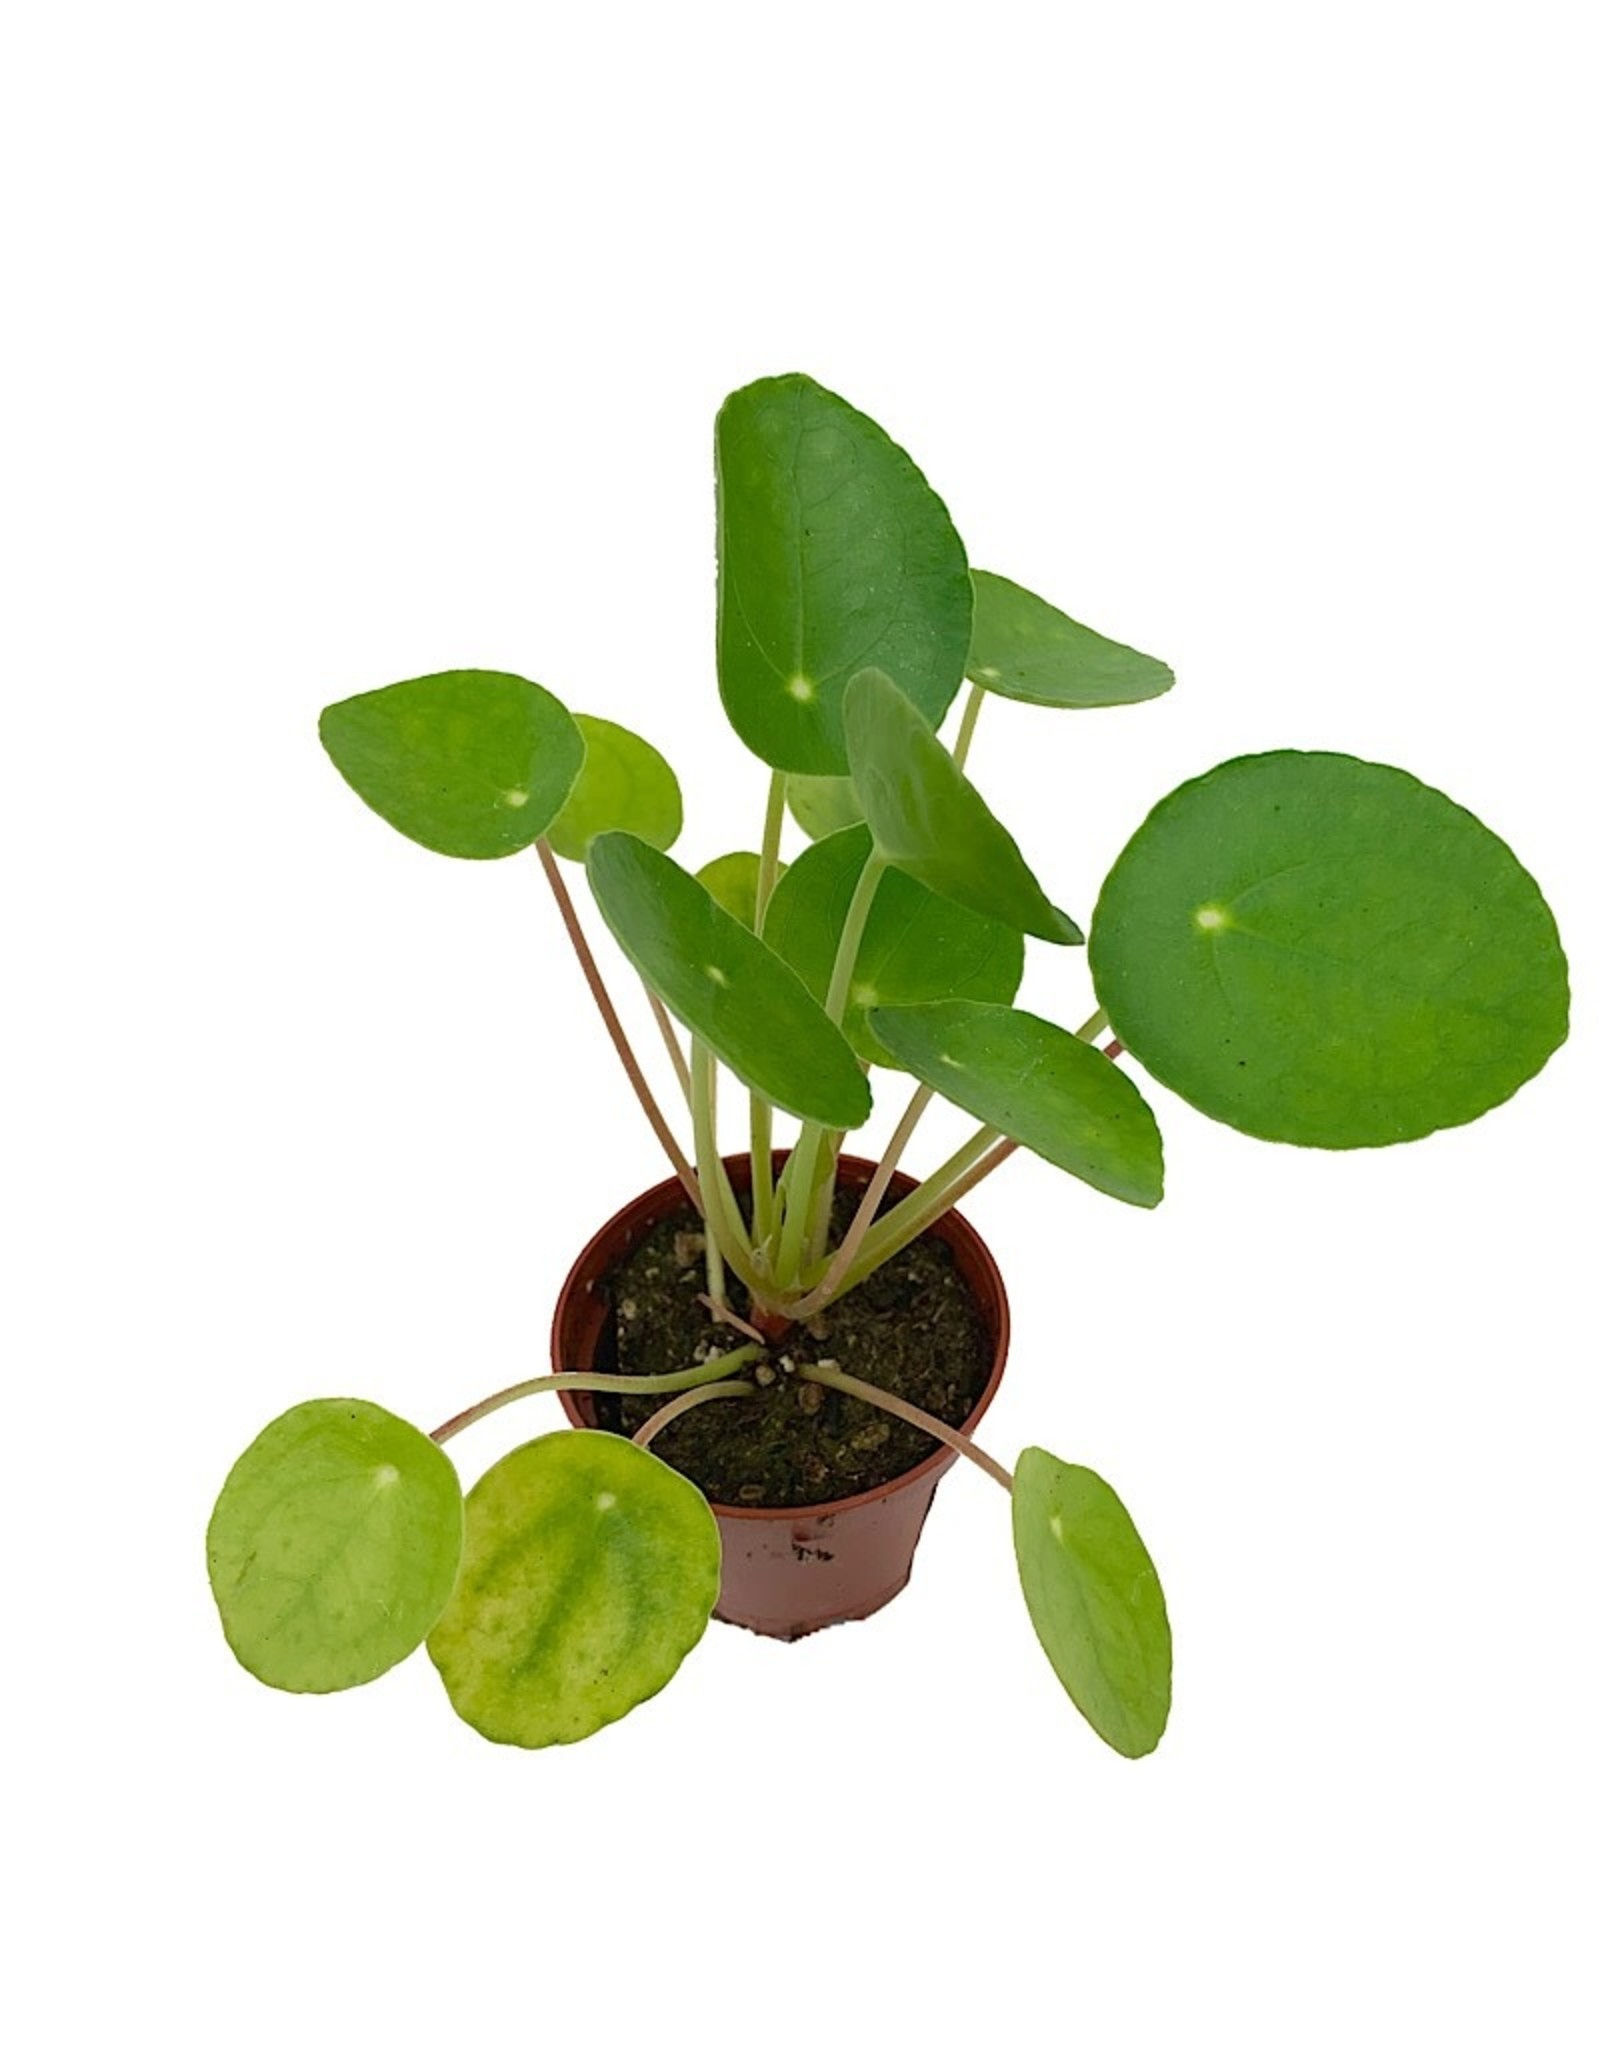 Pilea peperomioides - 2 inch